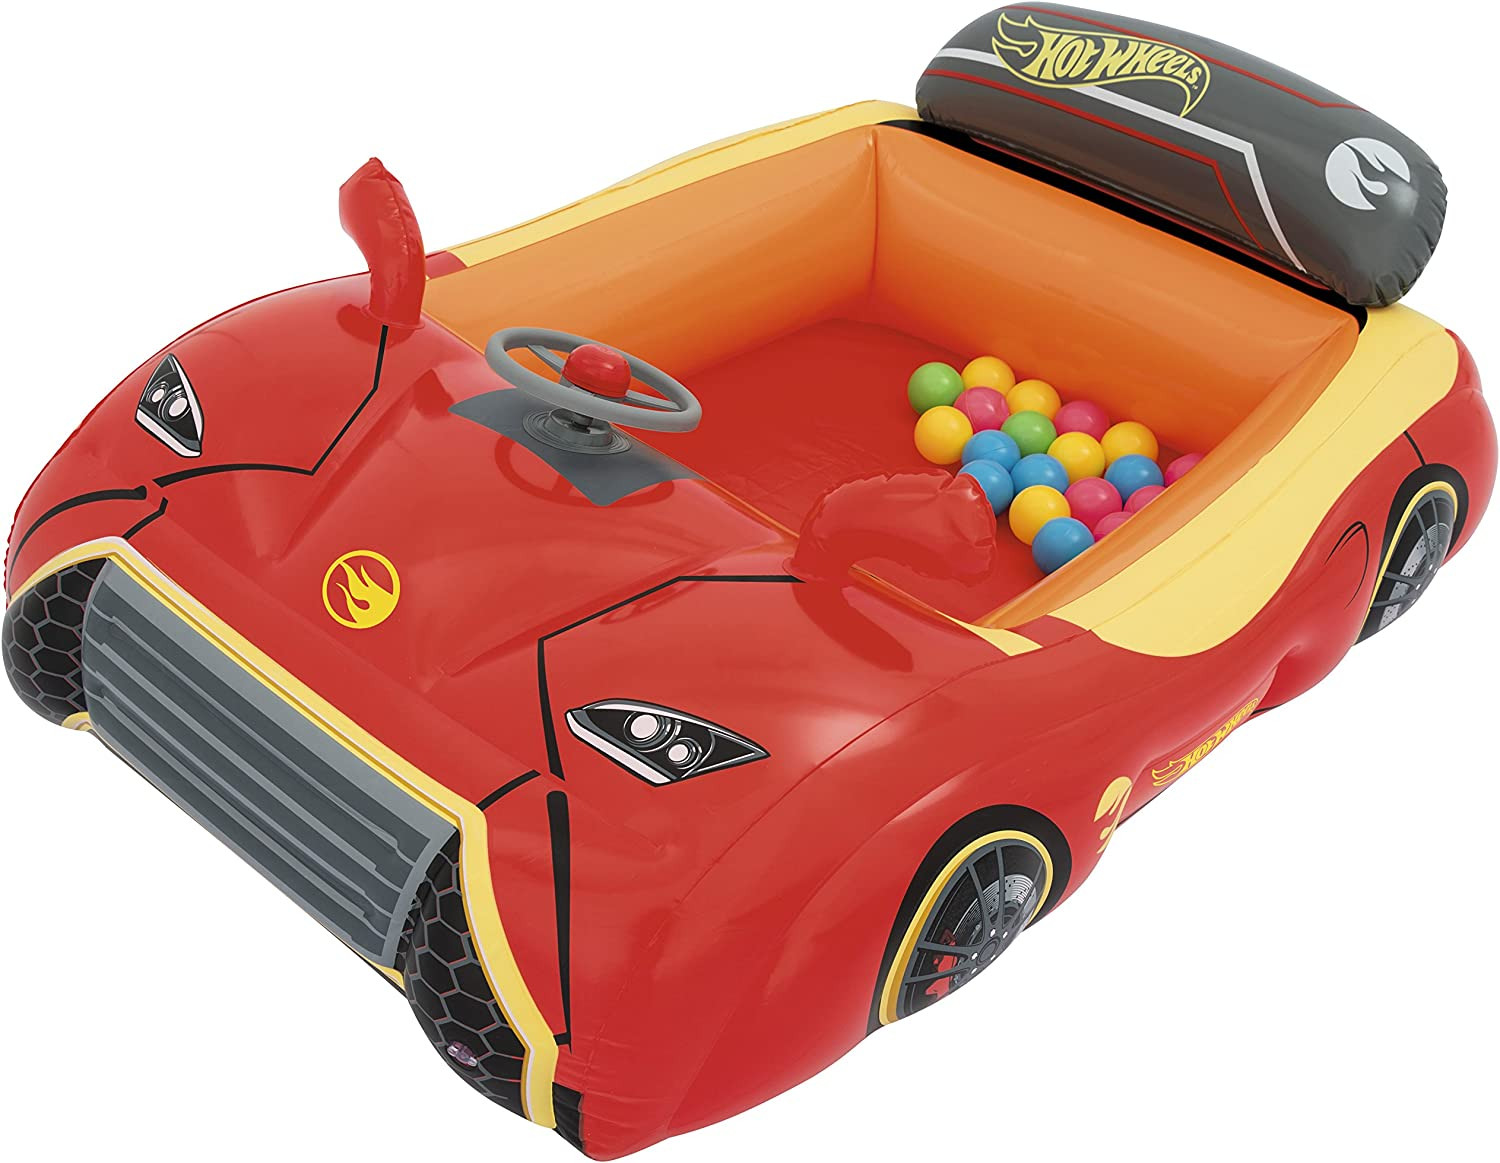 Piscina de Bolas Hinchable Bestway Hot Wheels Coche Deportivo ...